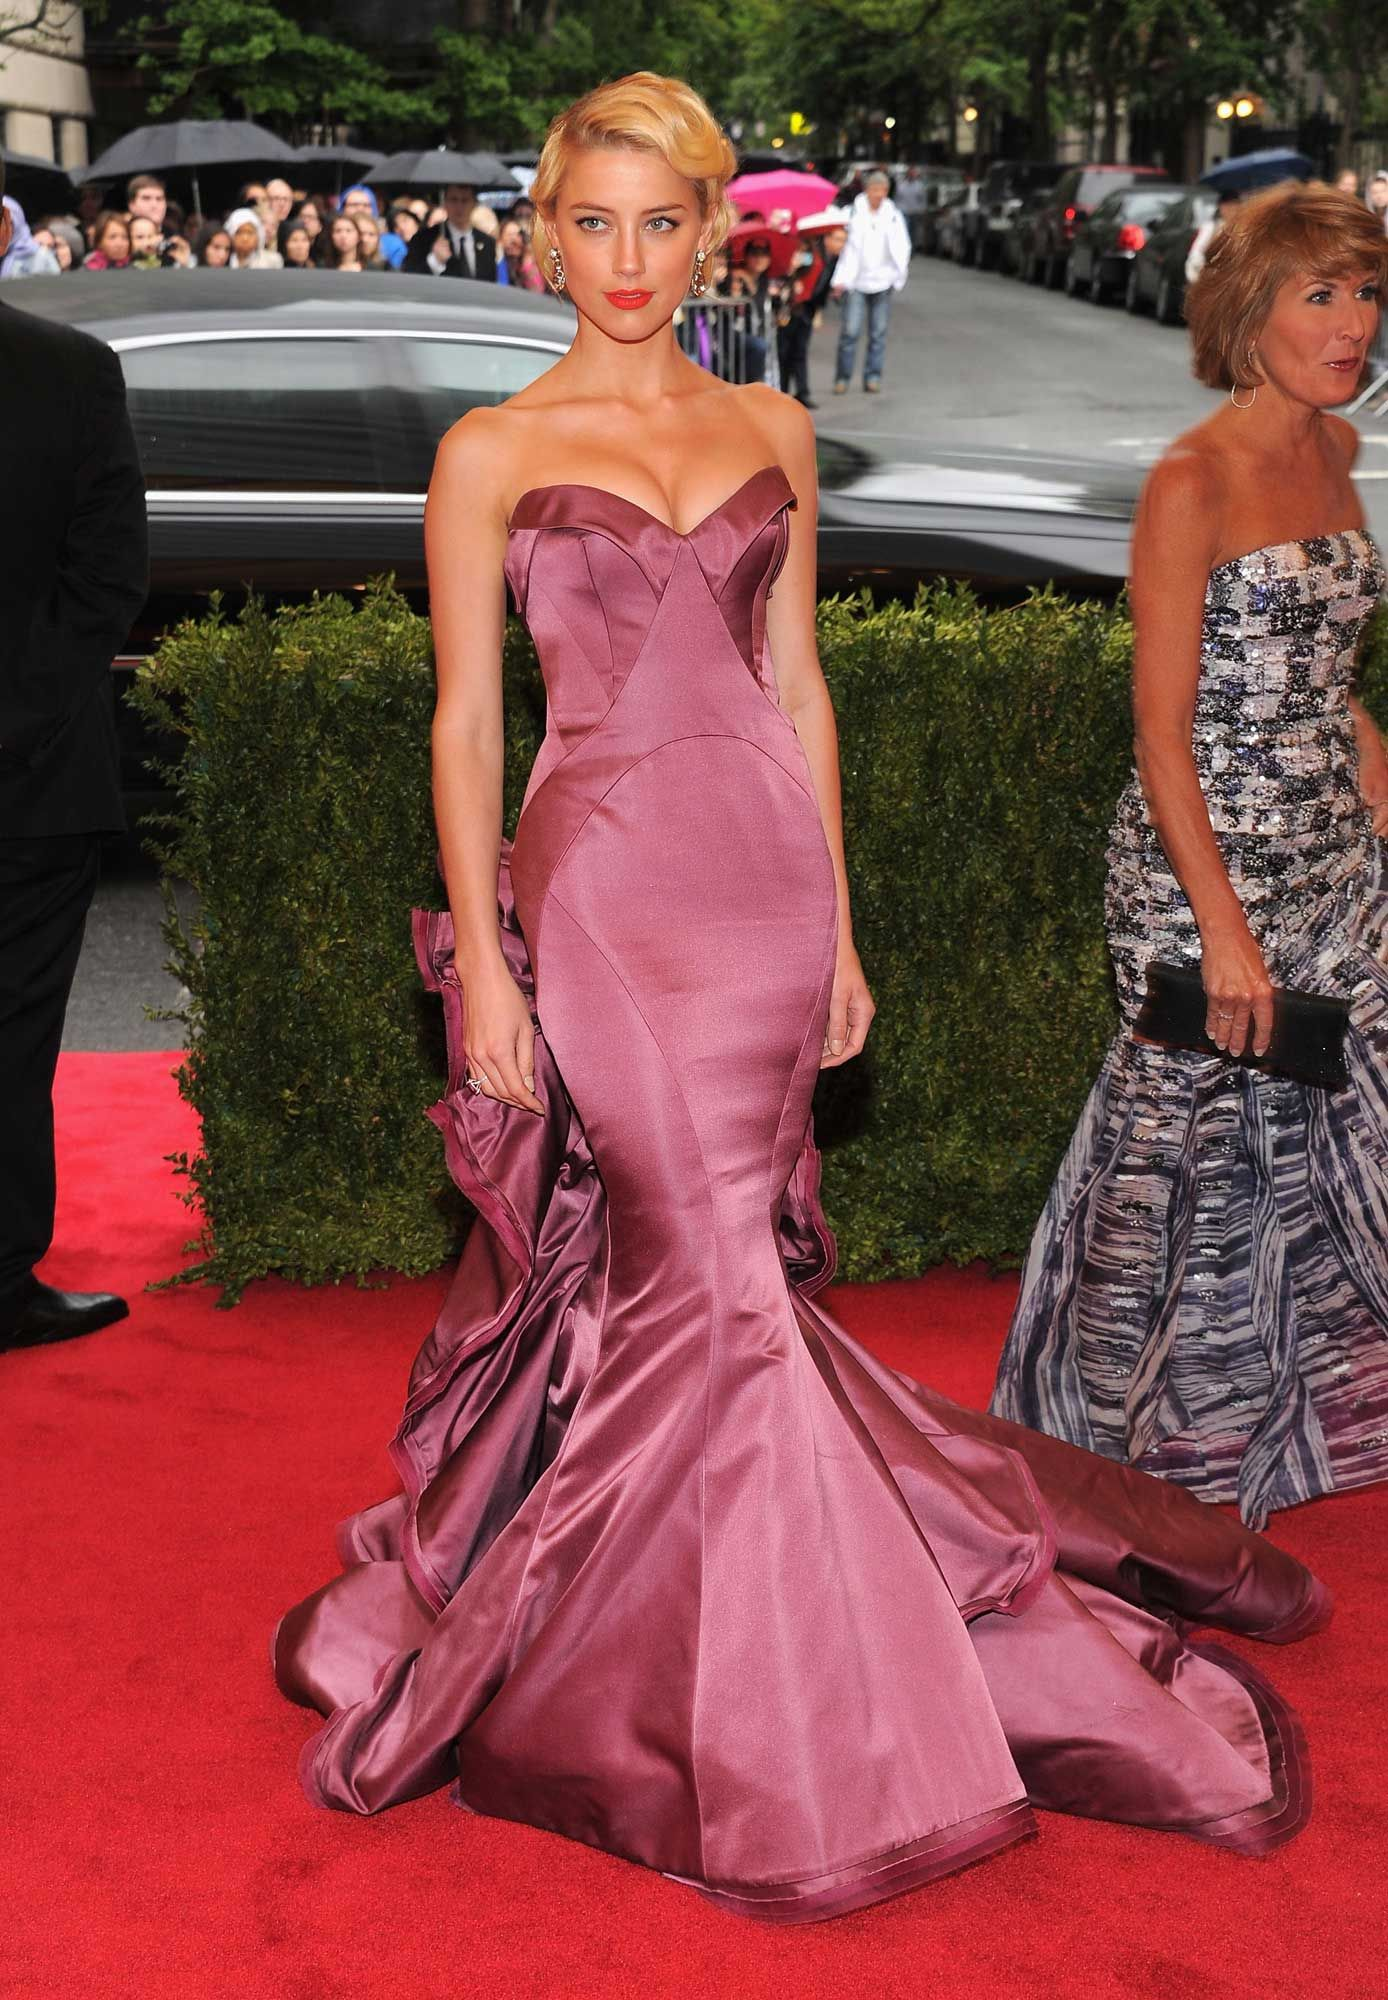 Amber Heard Now And Then Gala Gowns Nice Dresses Fashion